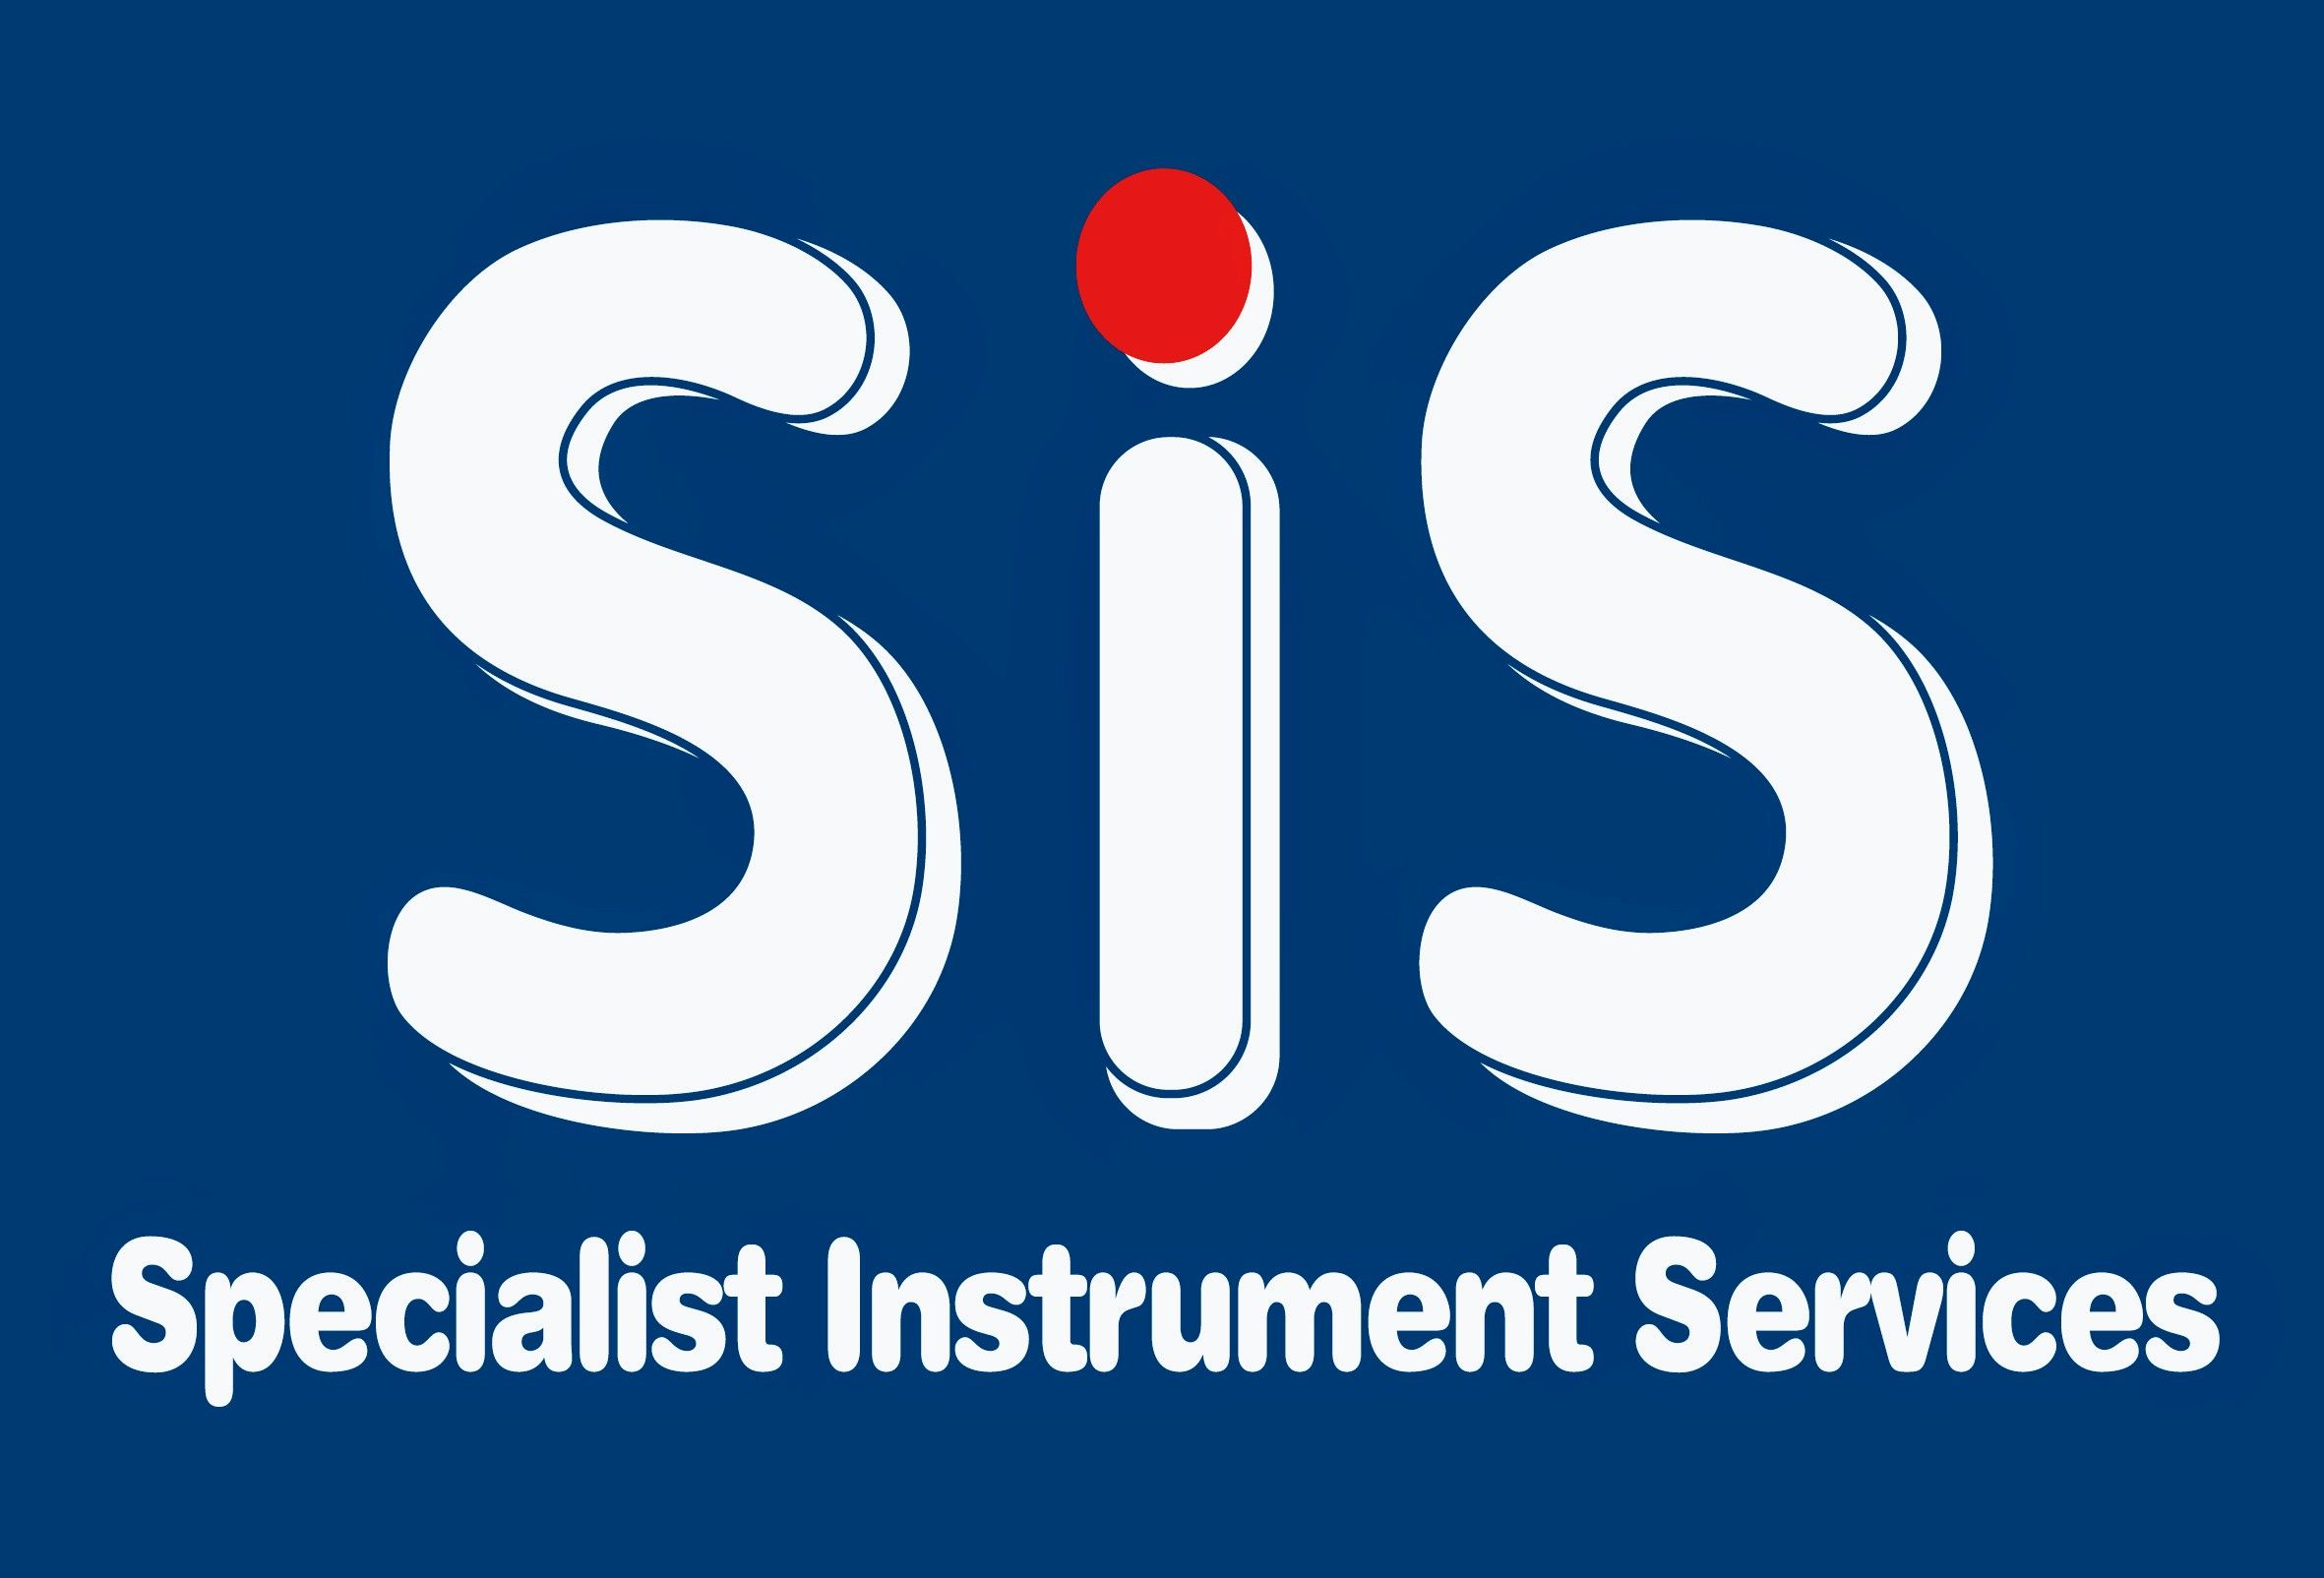 SiS (Specialist Instrument Services)